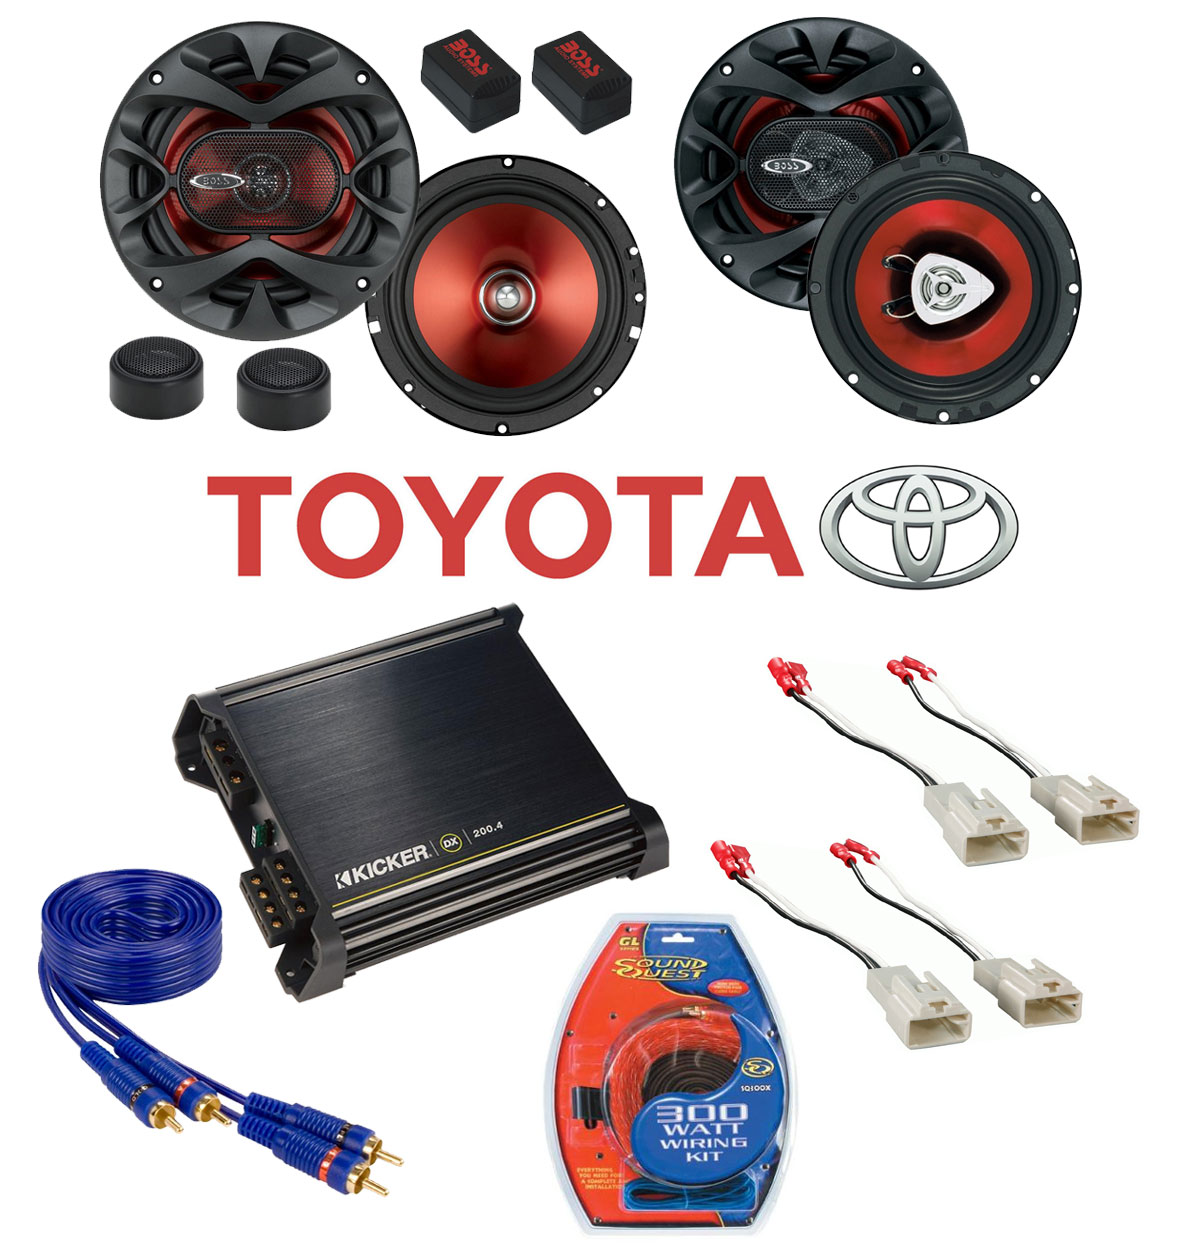 Toyota Corolla 1998-2002 Boss Factory Component Speaker Replacement CH6CK u0026 CH6500 Package with Kicker DX200.4 Amp  sc 1 st  HiFiSoundconnection : wiring component speakers to amp - yogabreezes.com